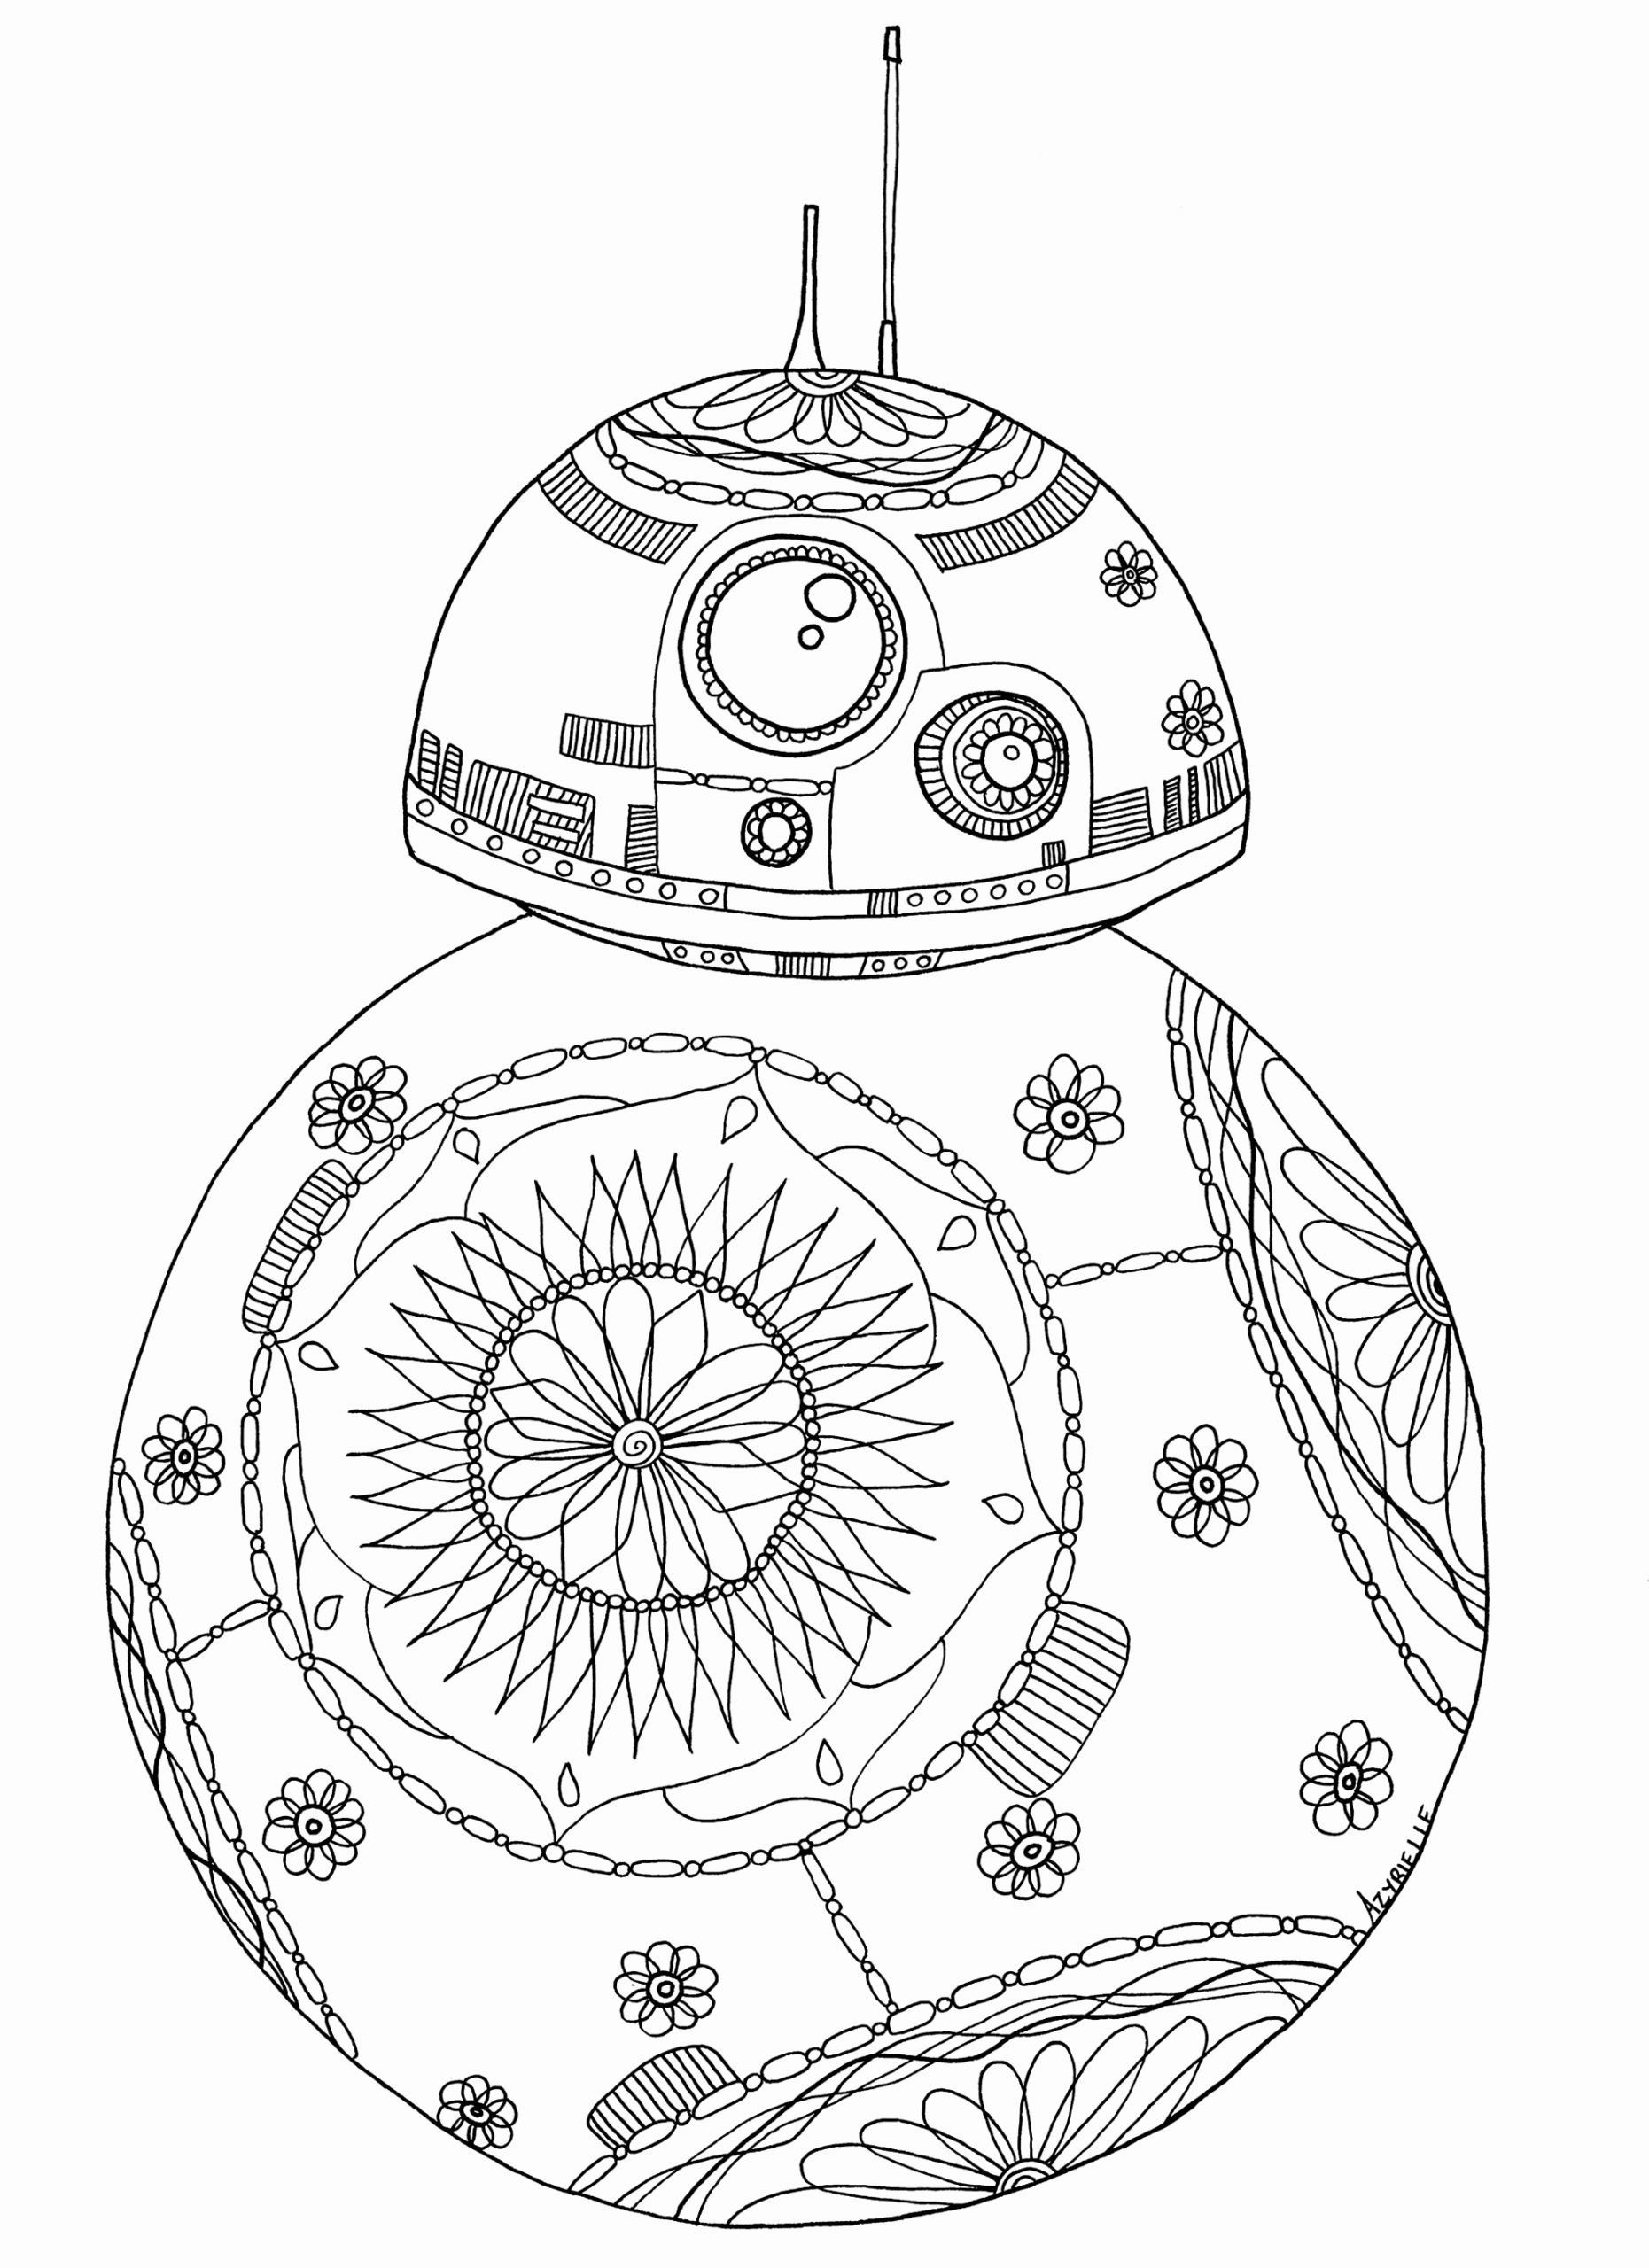 24 Star Wars Adult Coloring Book in 2020 Star wars